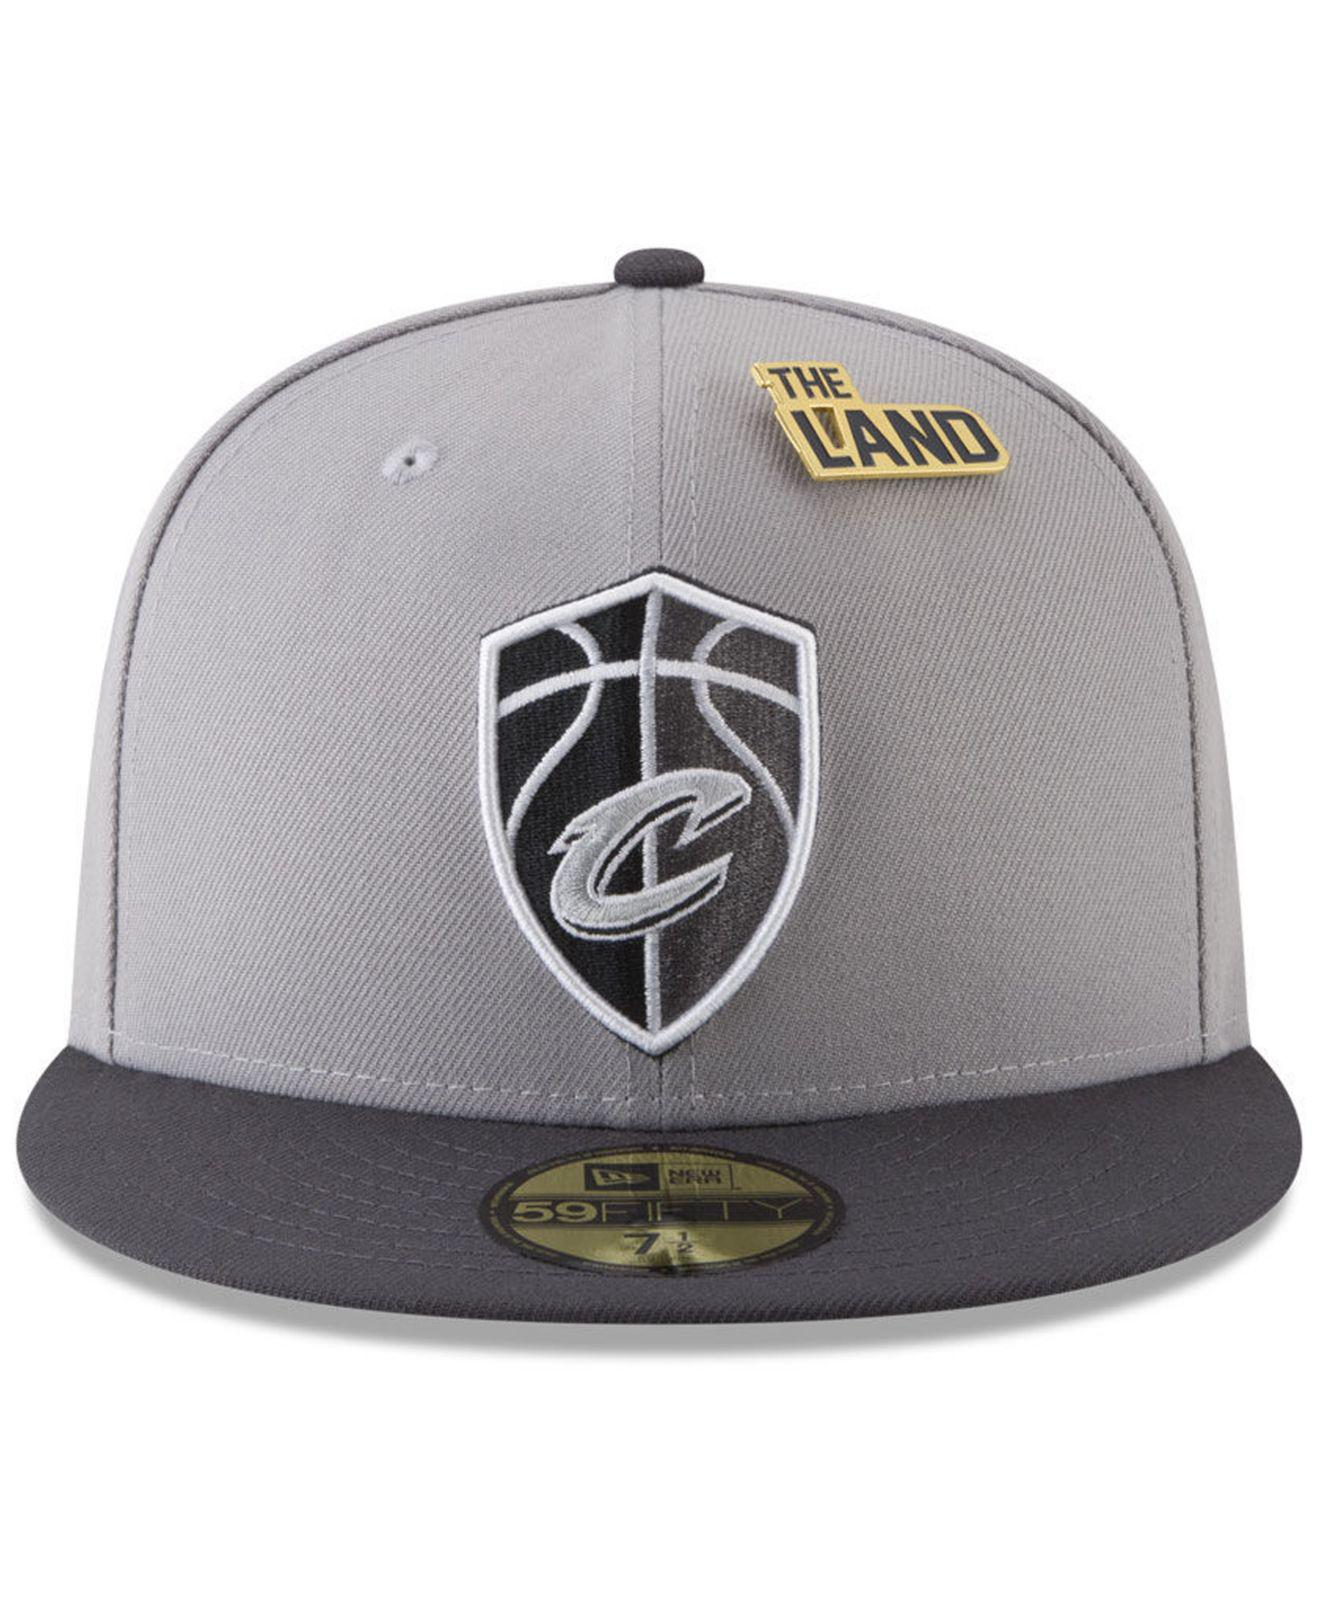 meet 89e6d 3c0b6 Lyst - KTZ Cleveland Cavaliers City On-court 59fifty Fitted Cap in Metallic  for Men